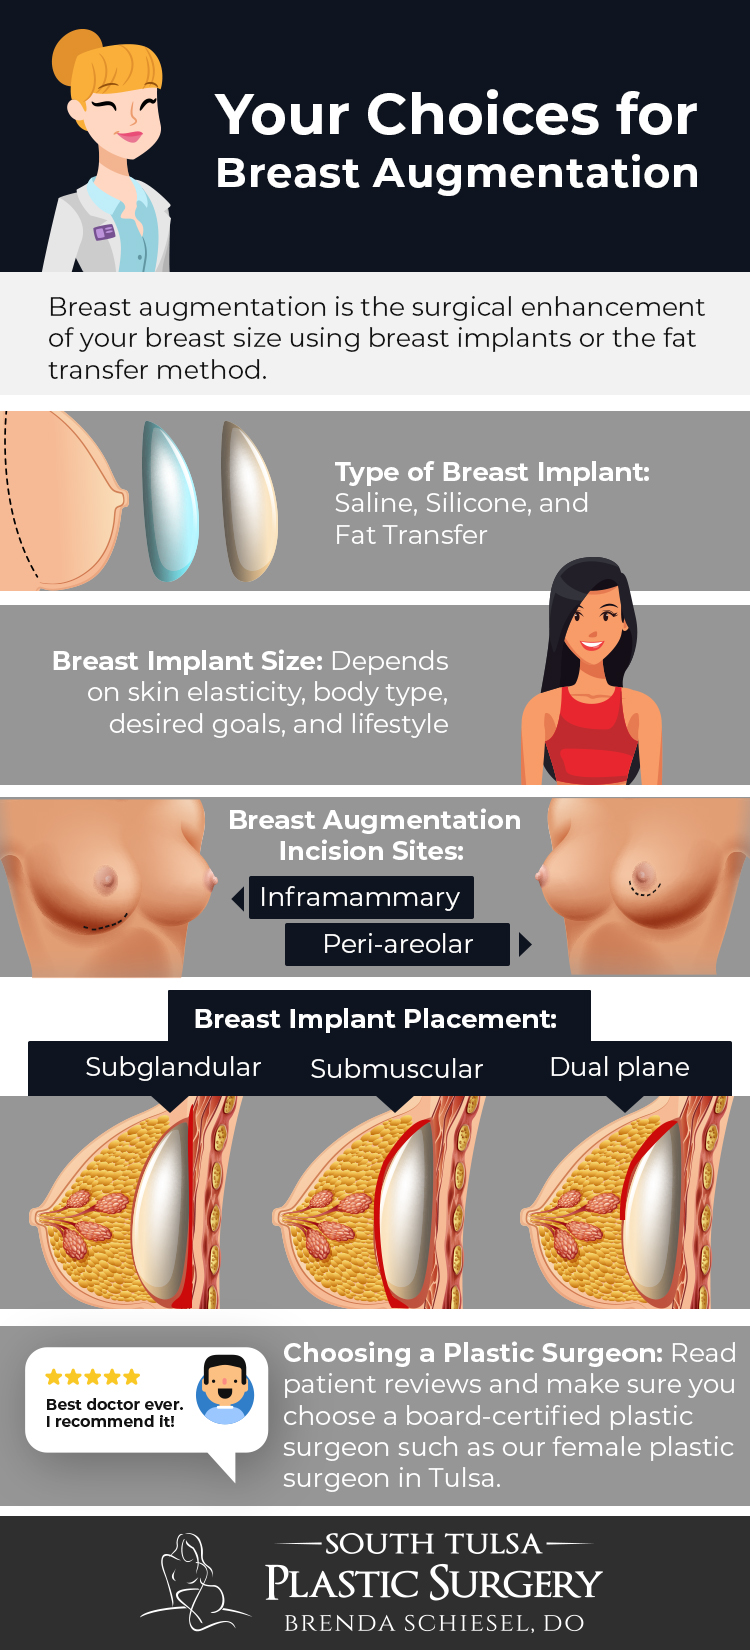 Graphic goes over breast augmentation options in Tulsa, Oklahoma